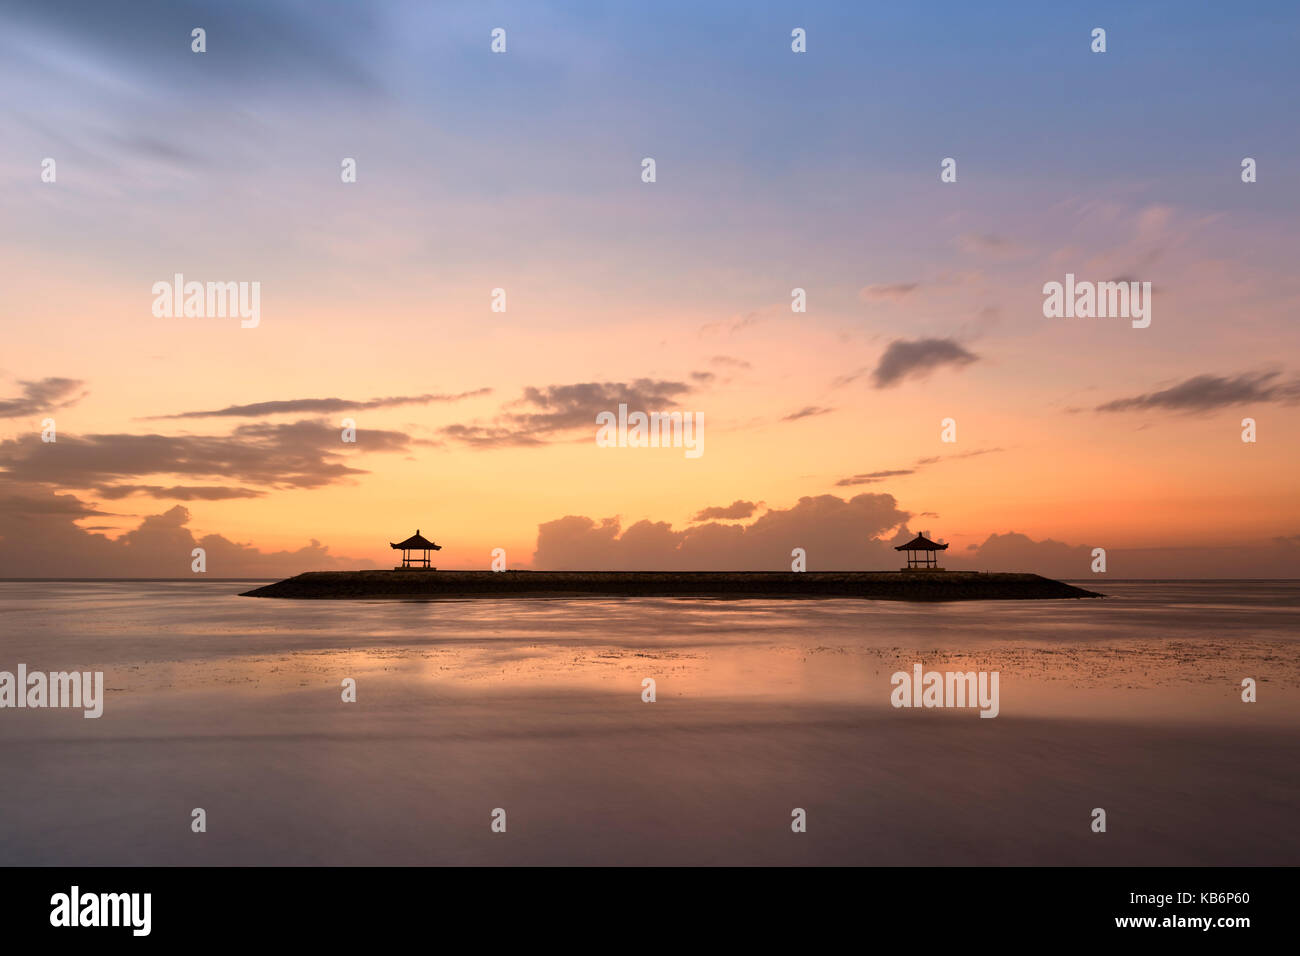 Sanur beach at sunrise, Bali, Indonesia - Stock Image